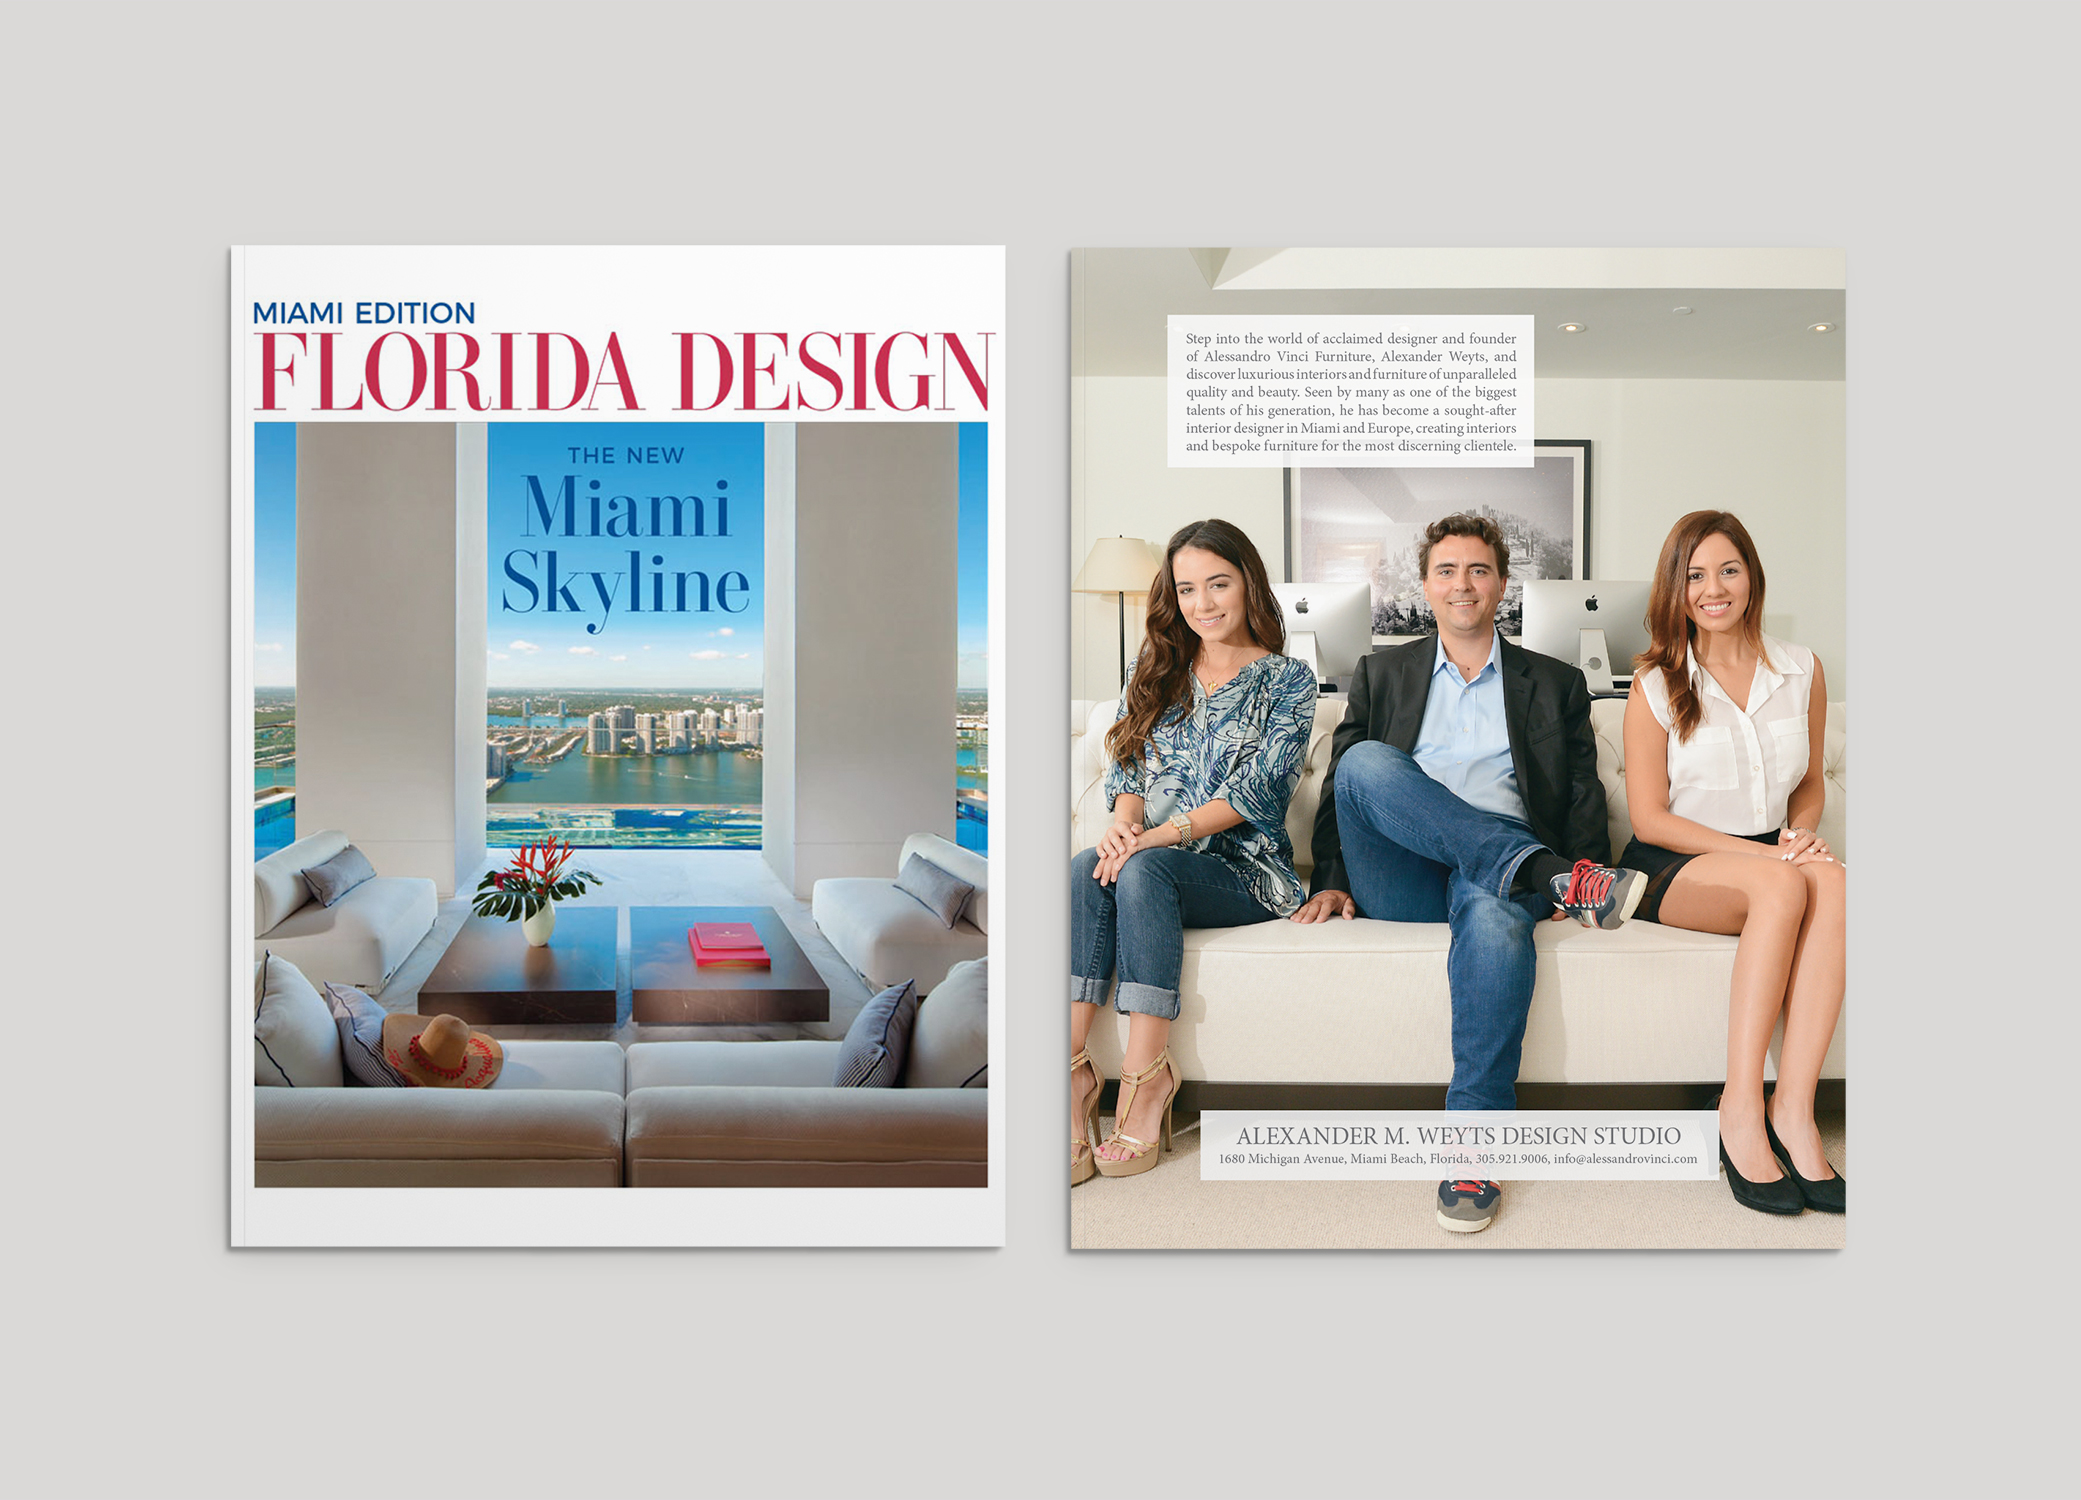 Bellagio Home design for Florida Magazine front cover and inside featured page design against grey backdrop.